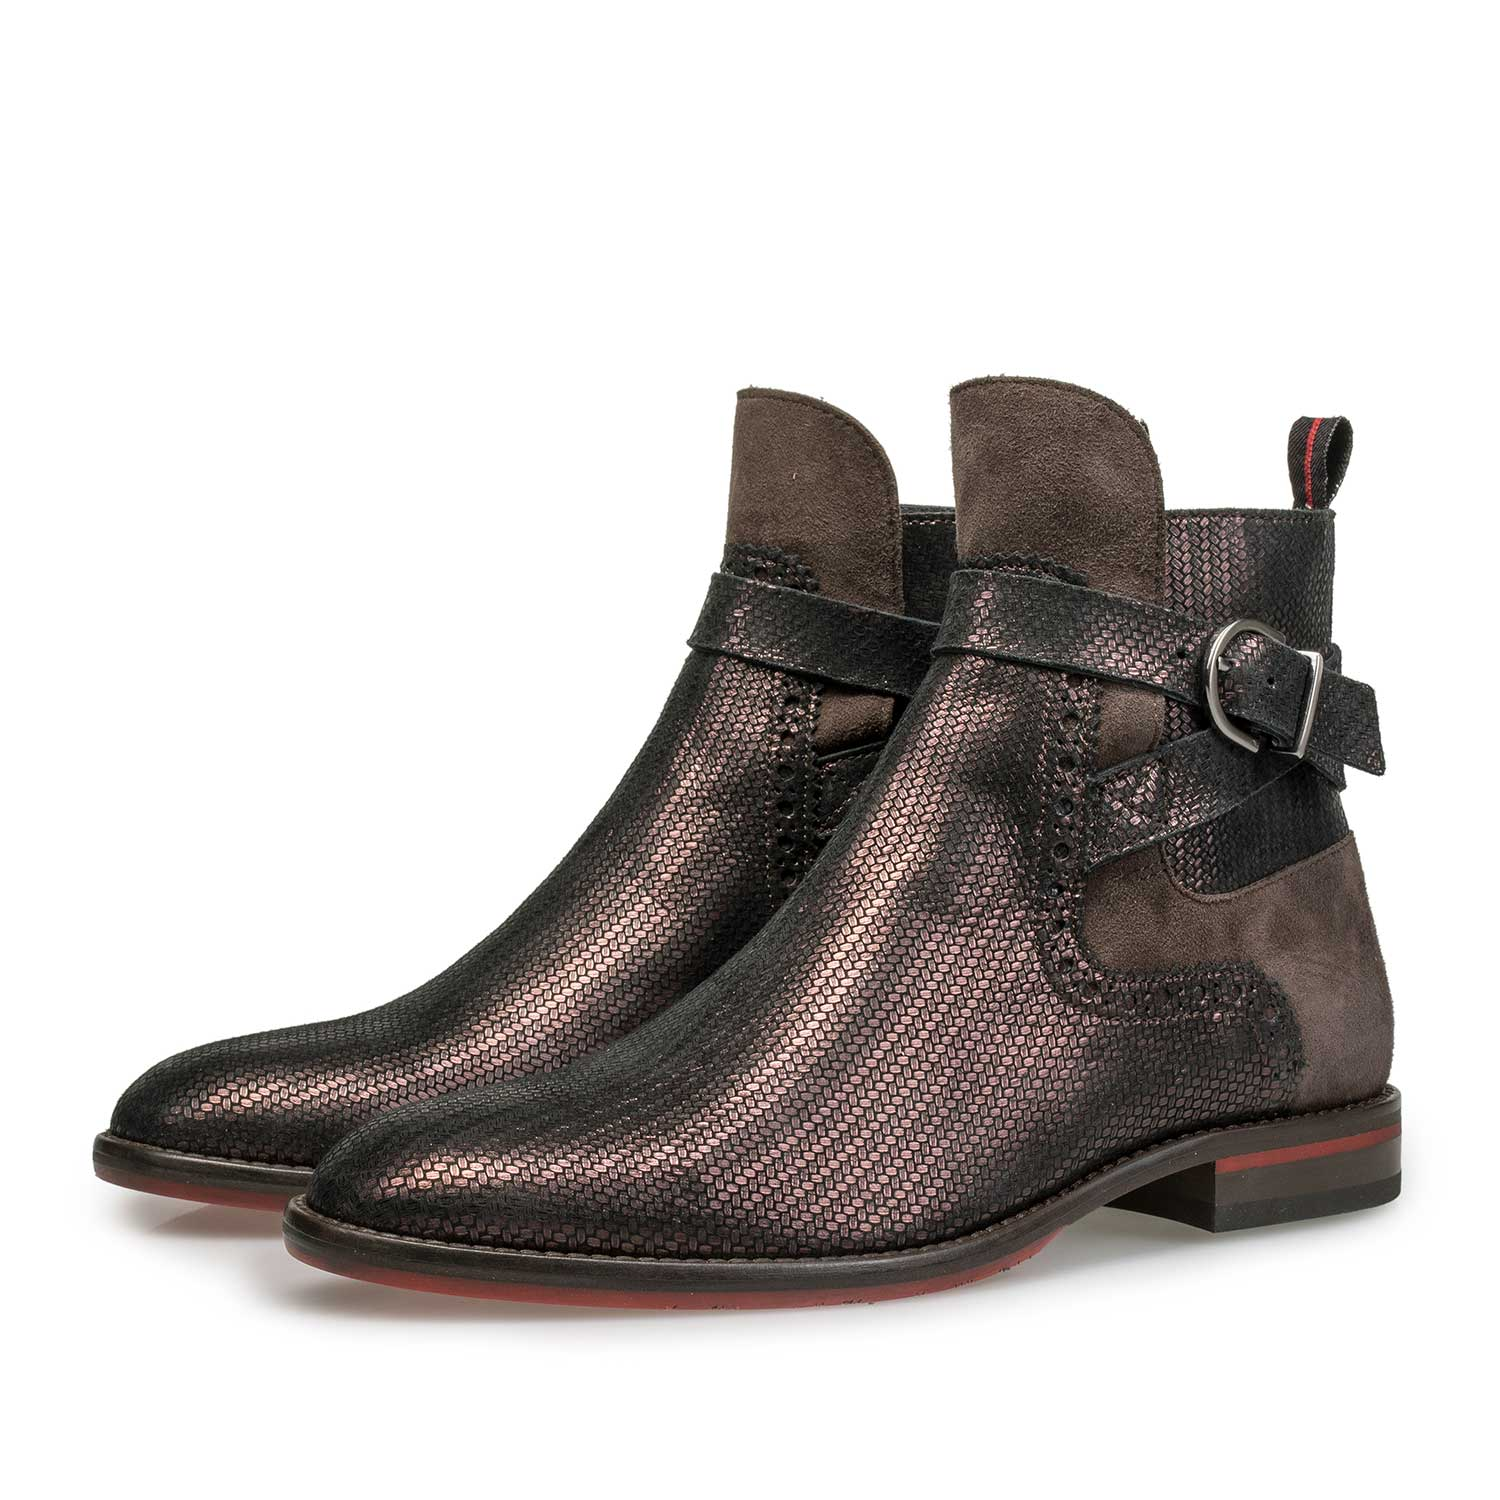 85600/01 - Dark red leather Chelsea boot with metallic print